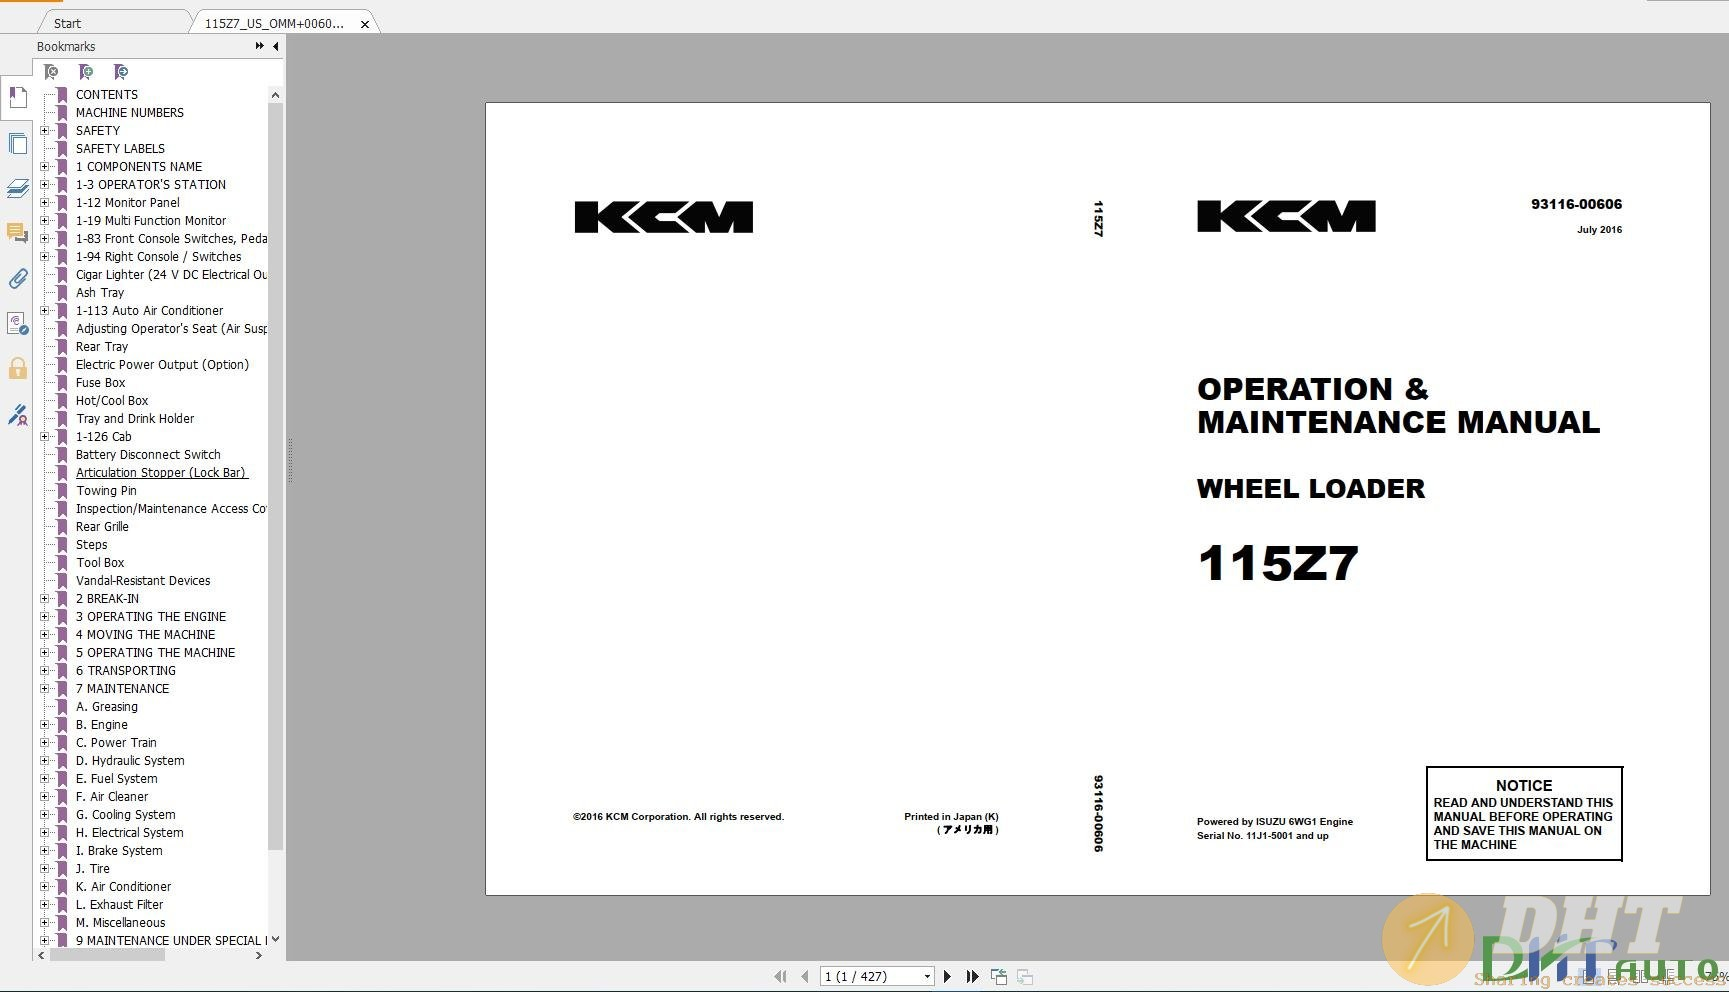 Kawasaki-Wheel-Loader-Workshop-Manual-Part-Manual-Full-Set-Update-2020-6.jpg